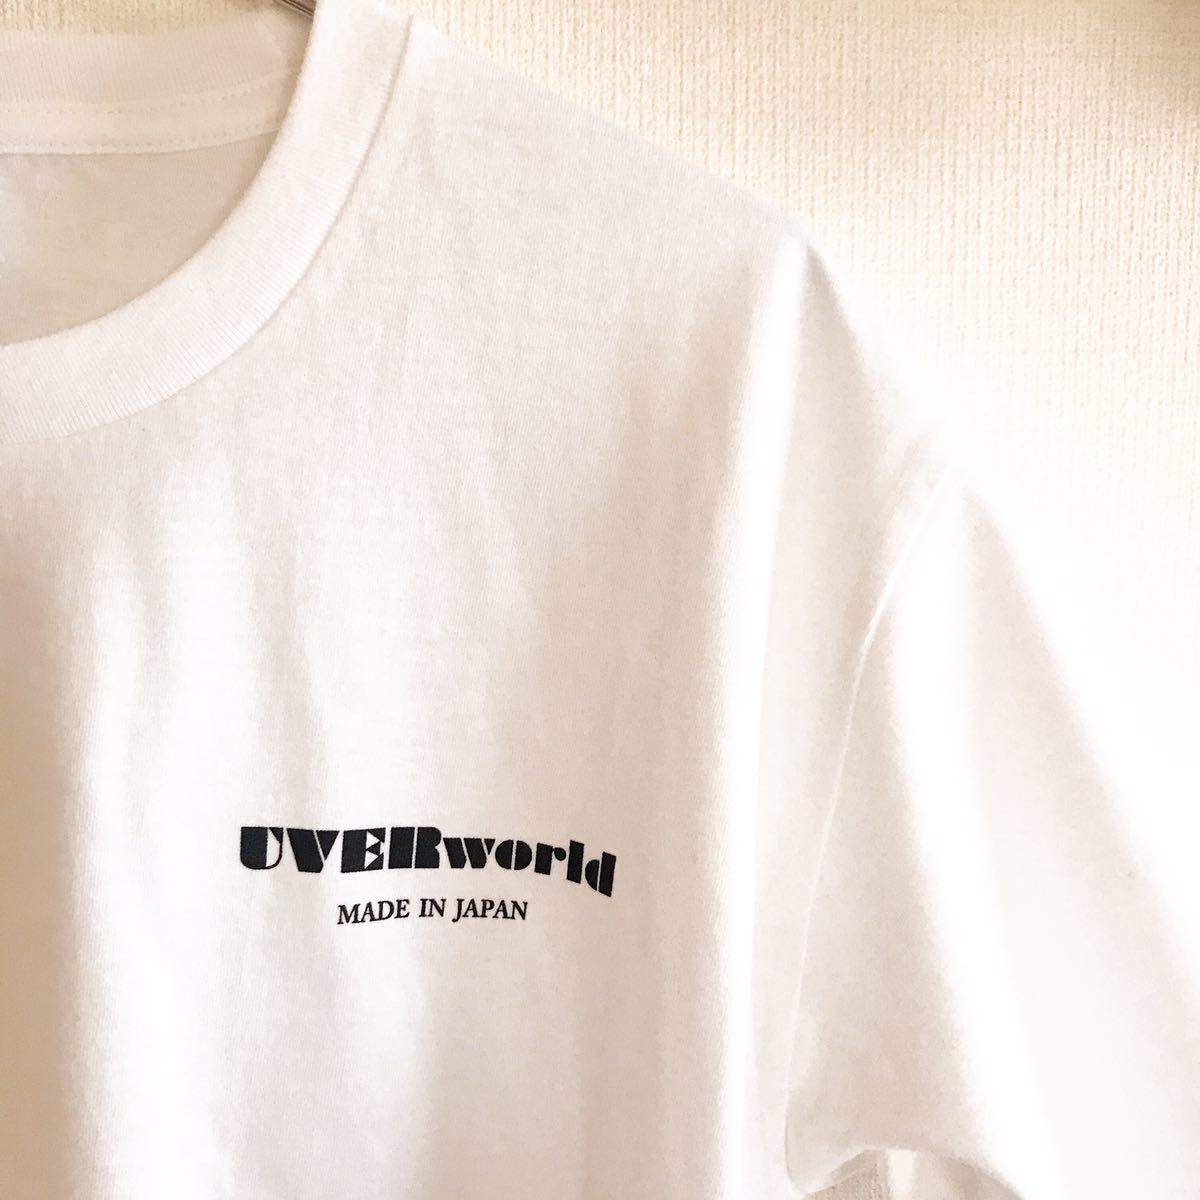 UVERworld2020グッズ 『MADE IN JAPAN』TEE Lサイズ 新品未使用